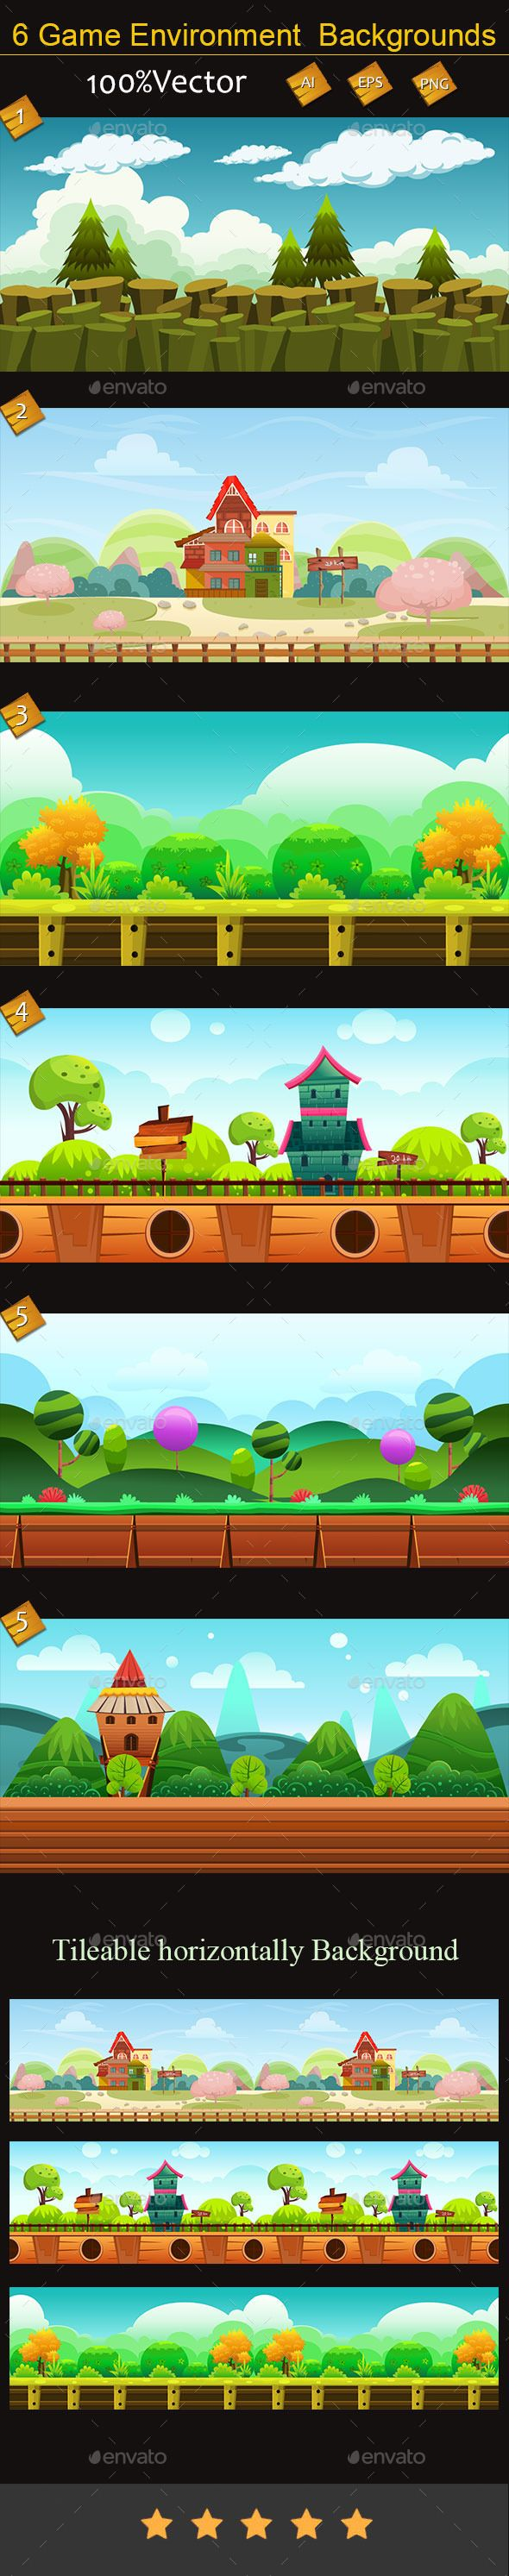 6 Game Environment  Backgrounds - Backgrounds Game Assets